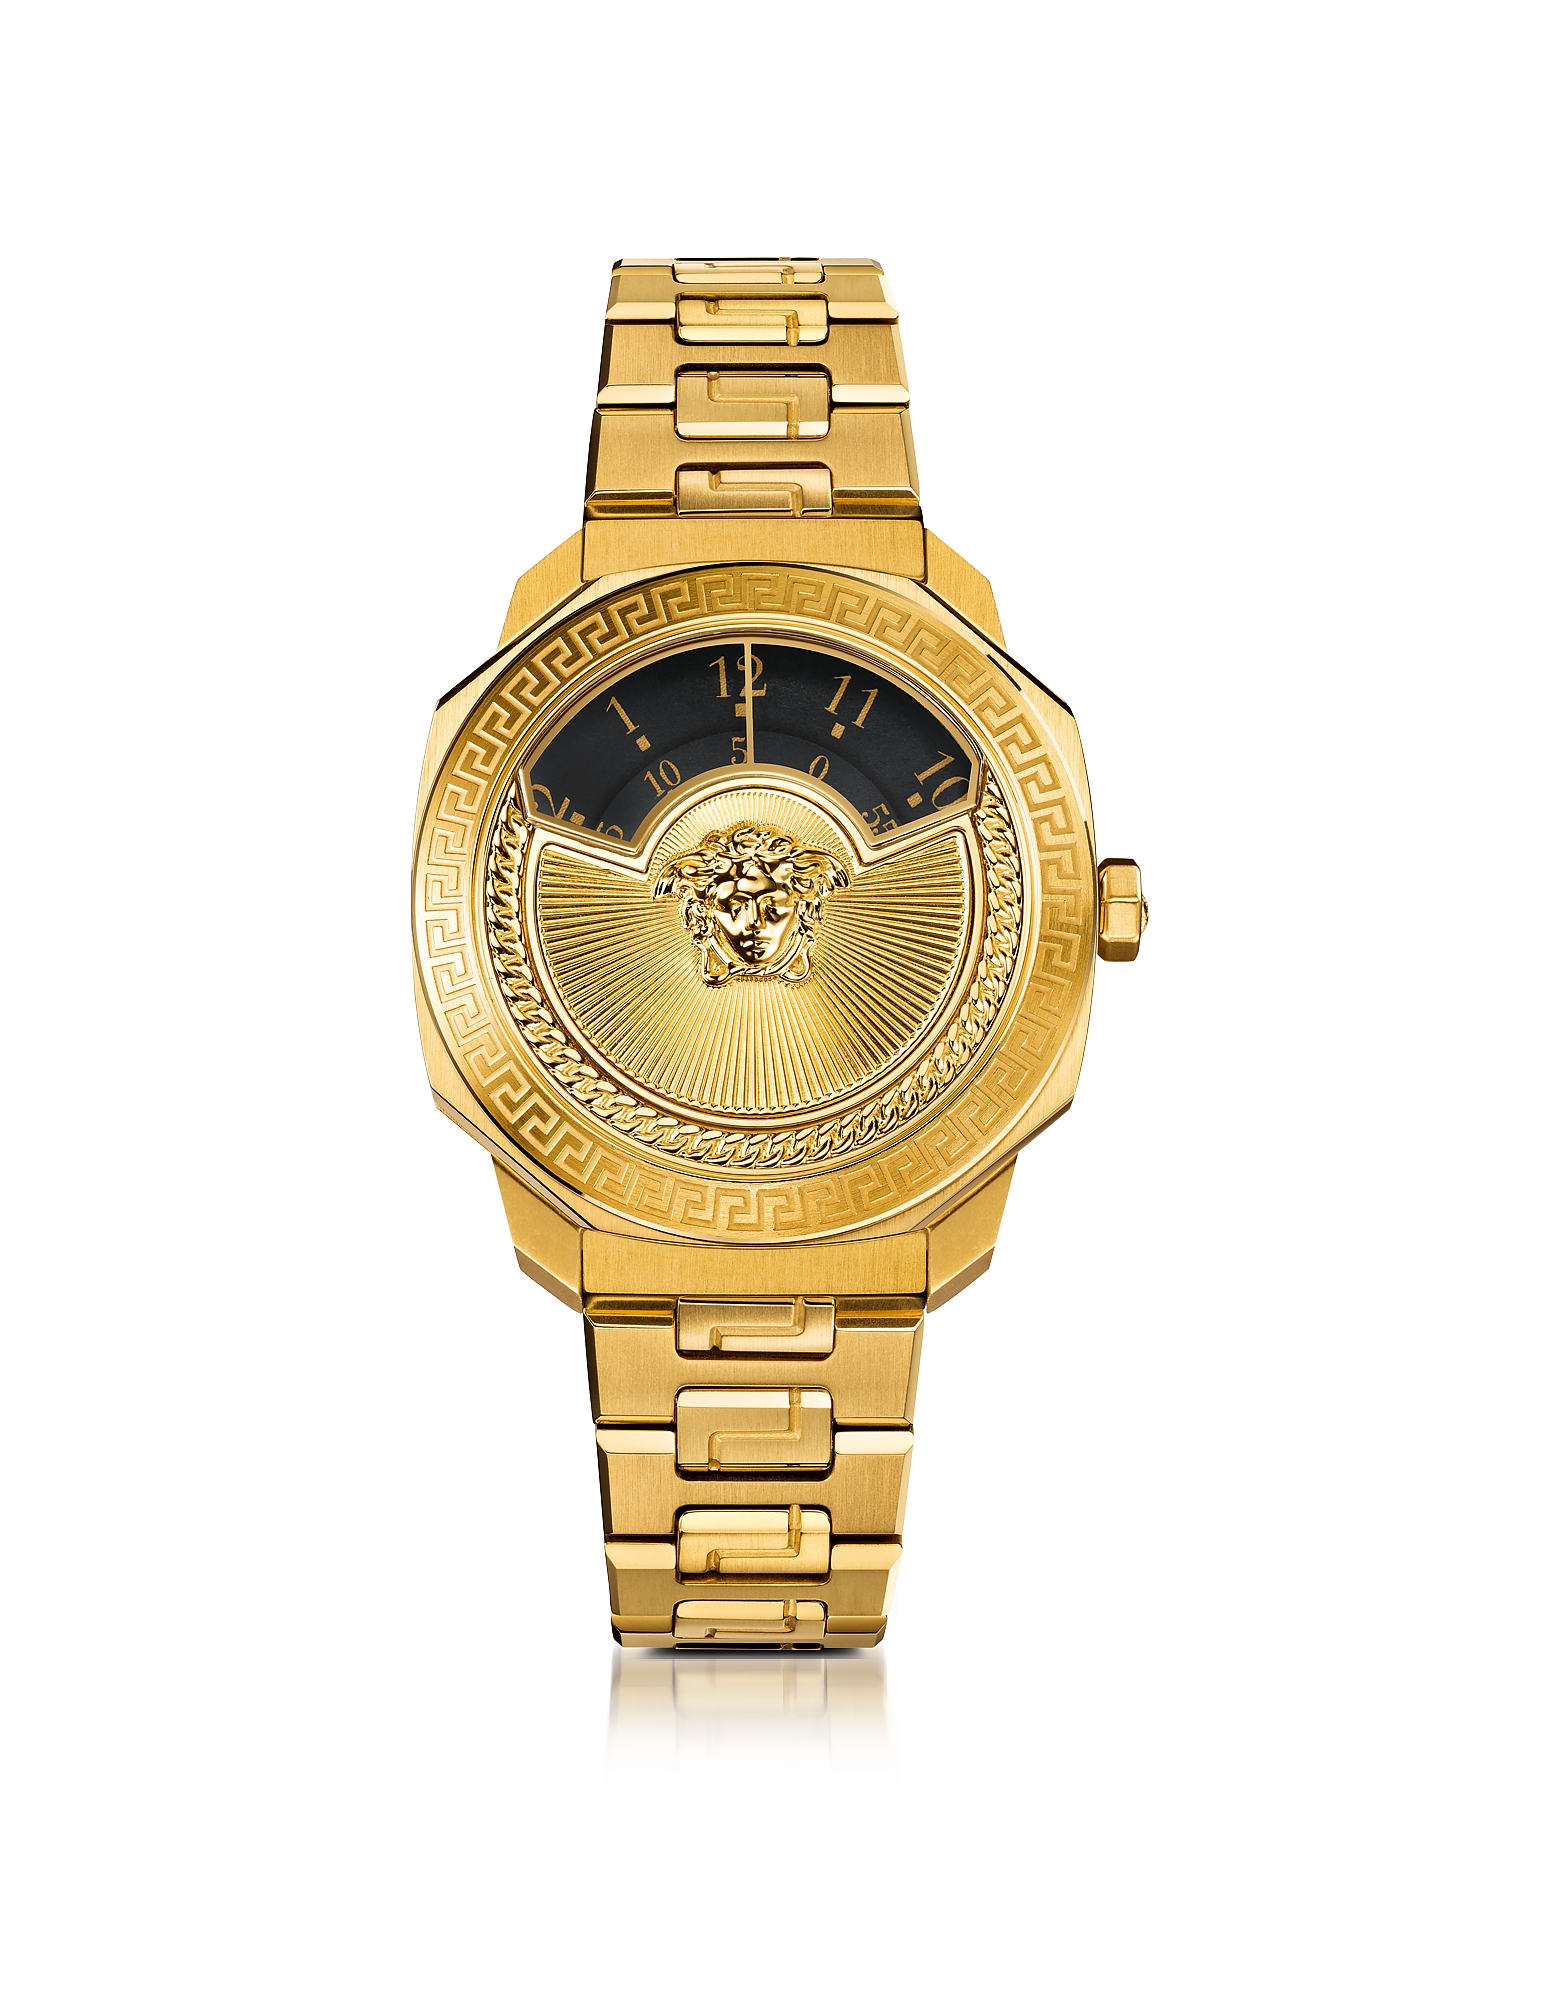 Versace Women's Watches, Dylos Icon Gold IP Stainless Steel Unisex Watch w/Black Discs and Medusa